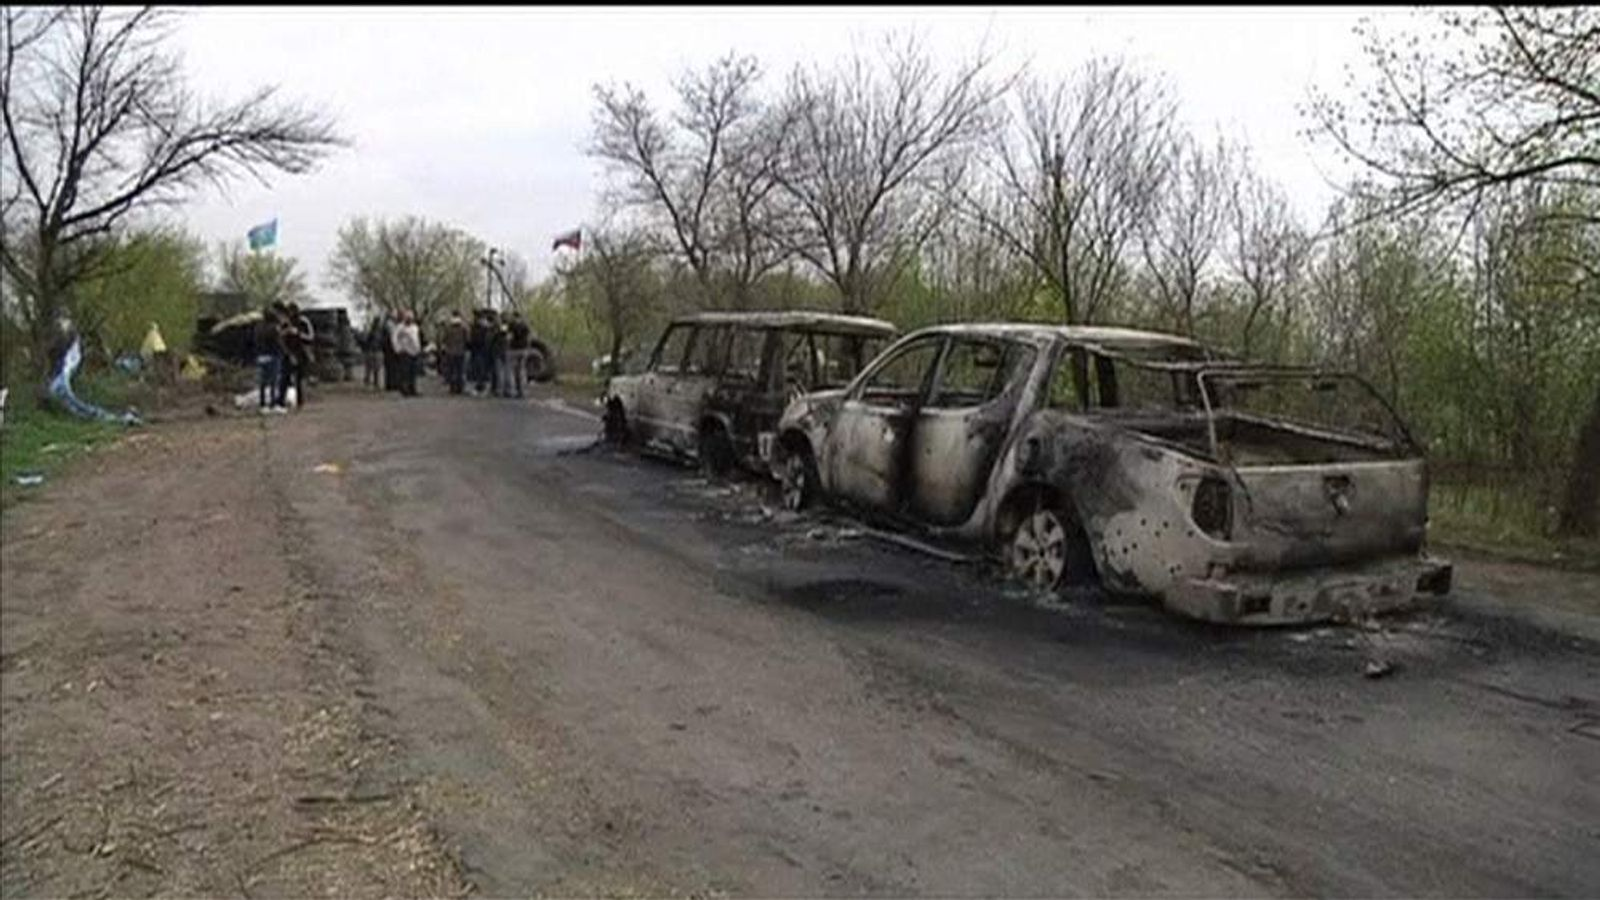 The checkpoint where a shootout took place in eastern Ukraine